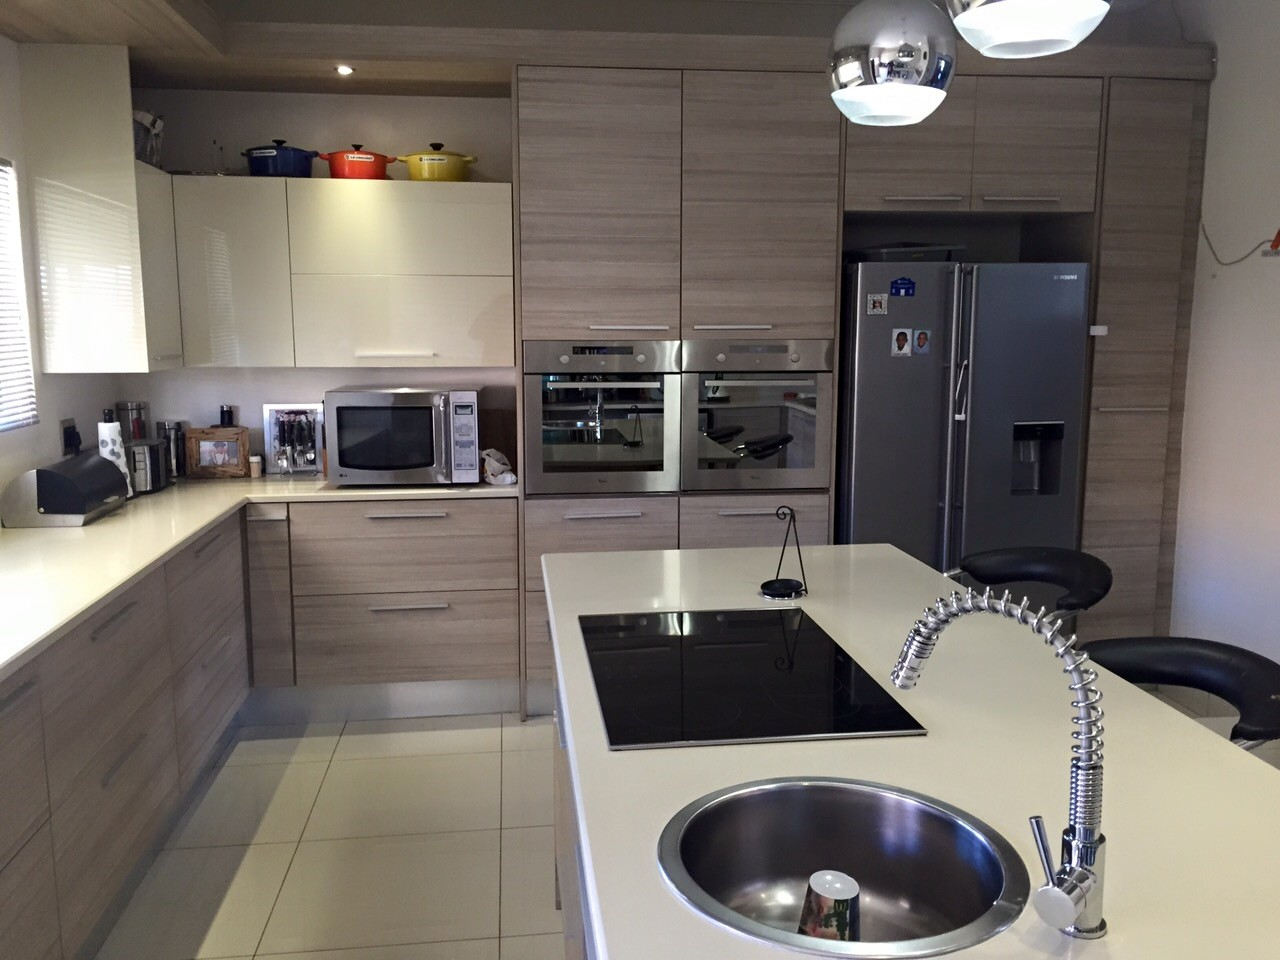 Appleberry design appleberry design kitchen design company in polokwane expert designers of South african kitchen designs